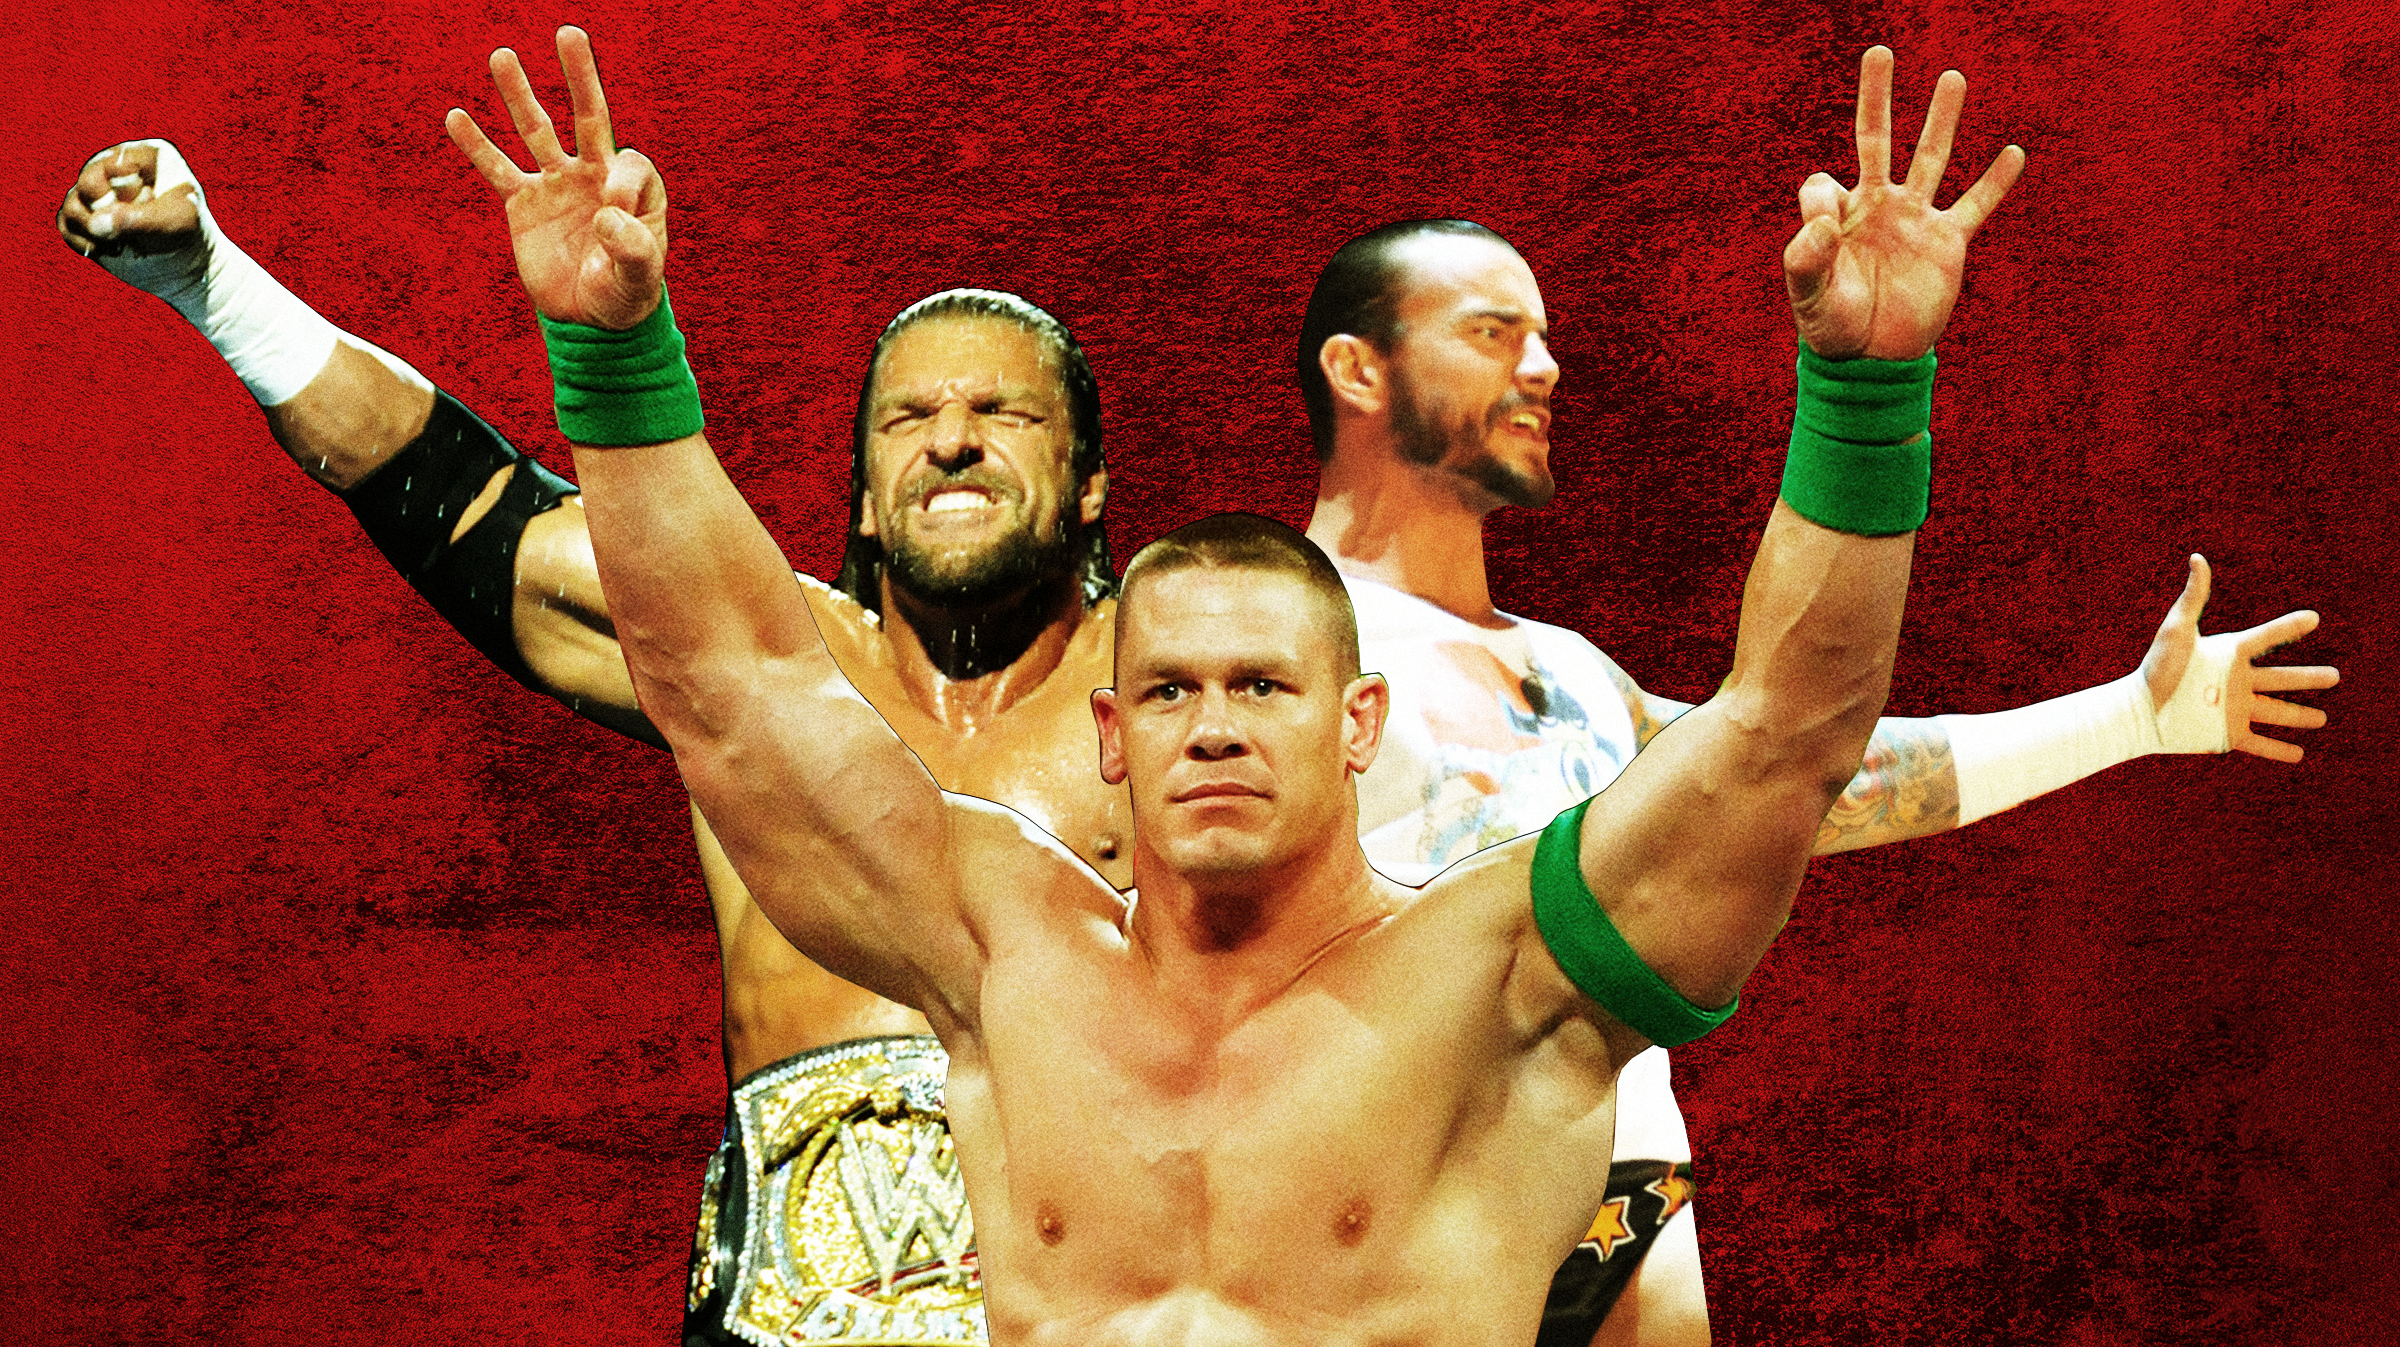 which wwe wrestler are you